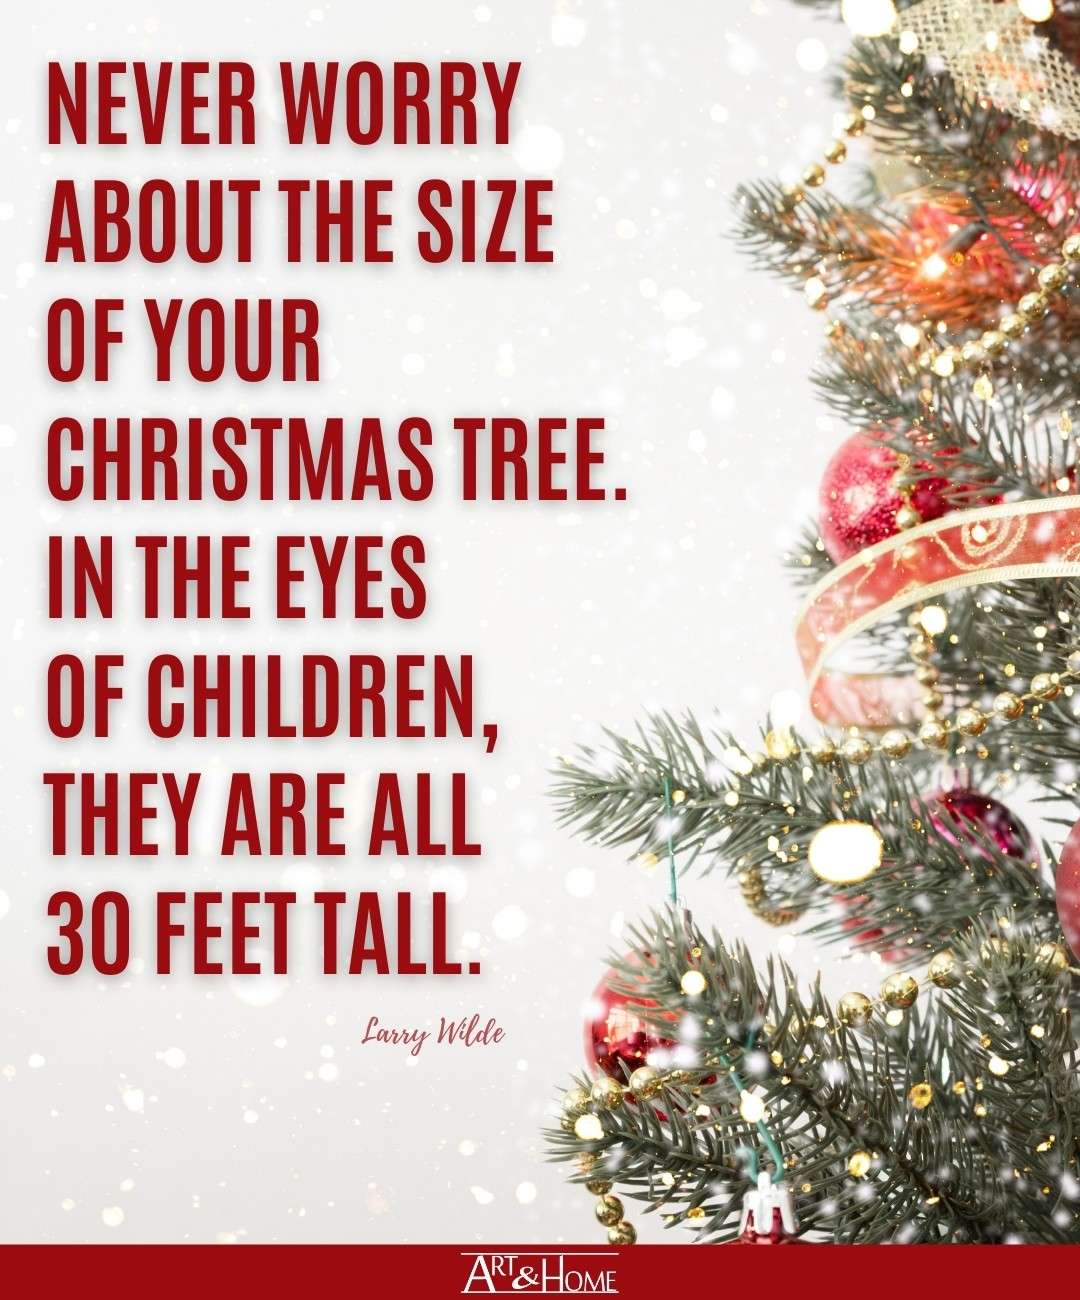 Never worry about the size of your Christmas tree. In the eyes of children, they are all 30 feet tall. Larry Wilde quote.